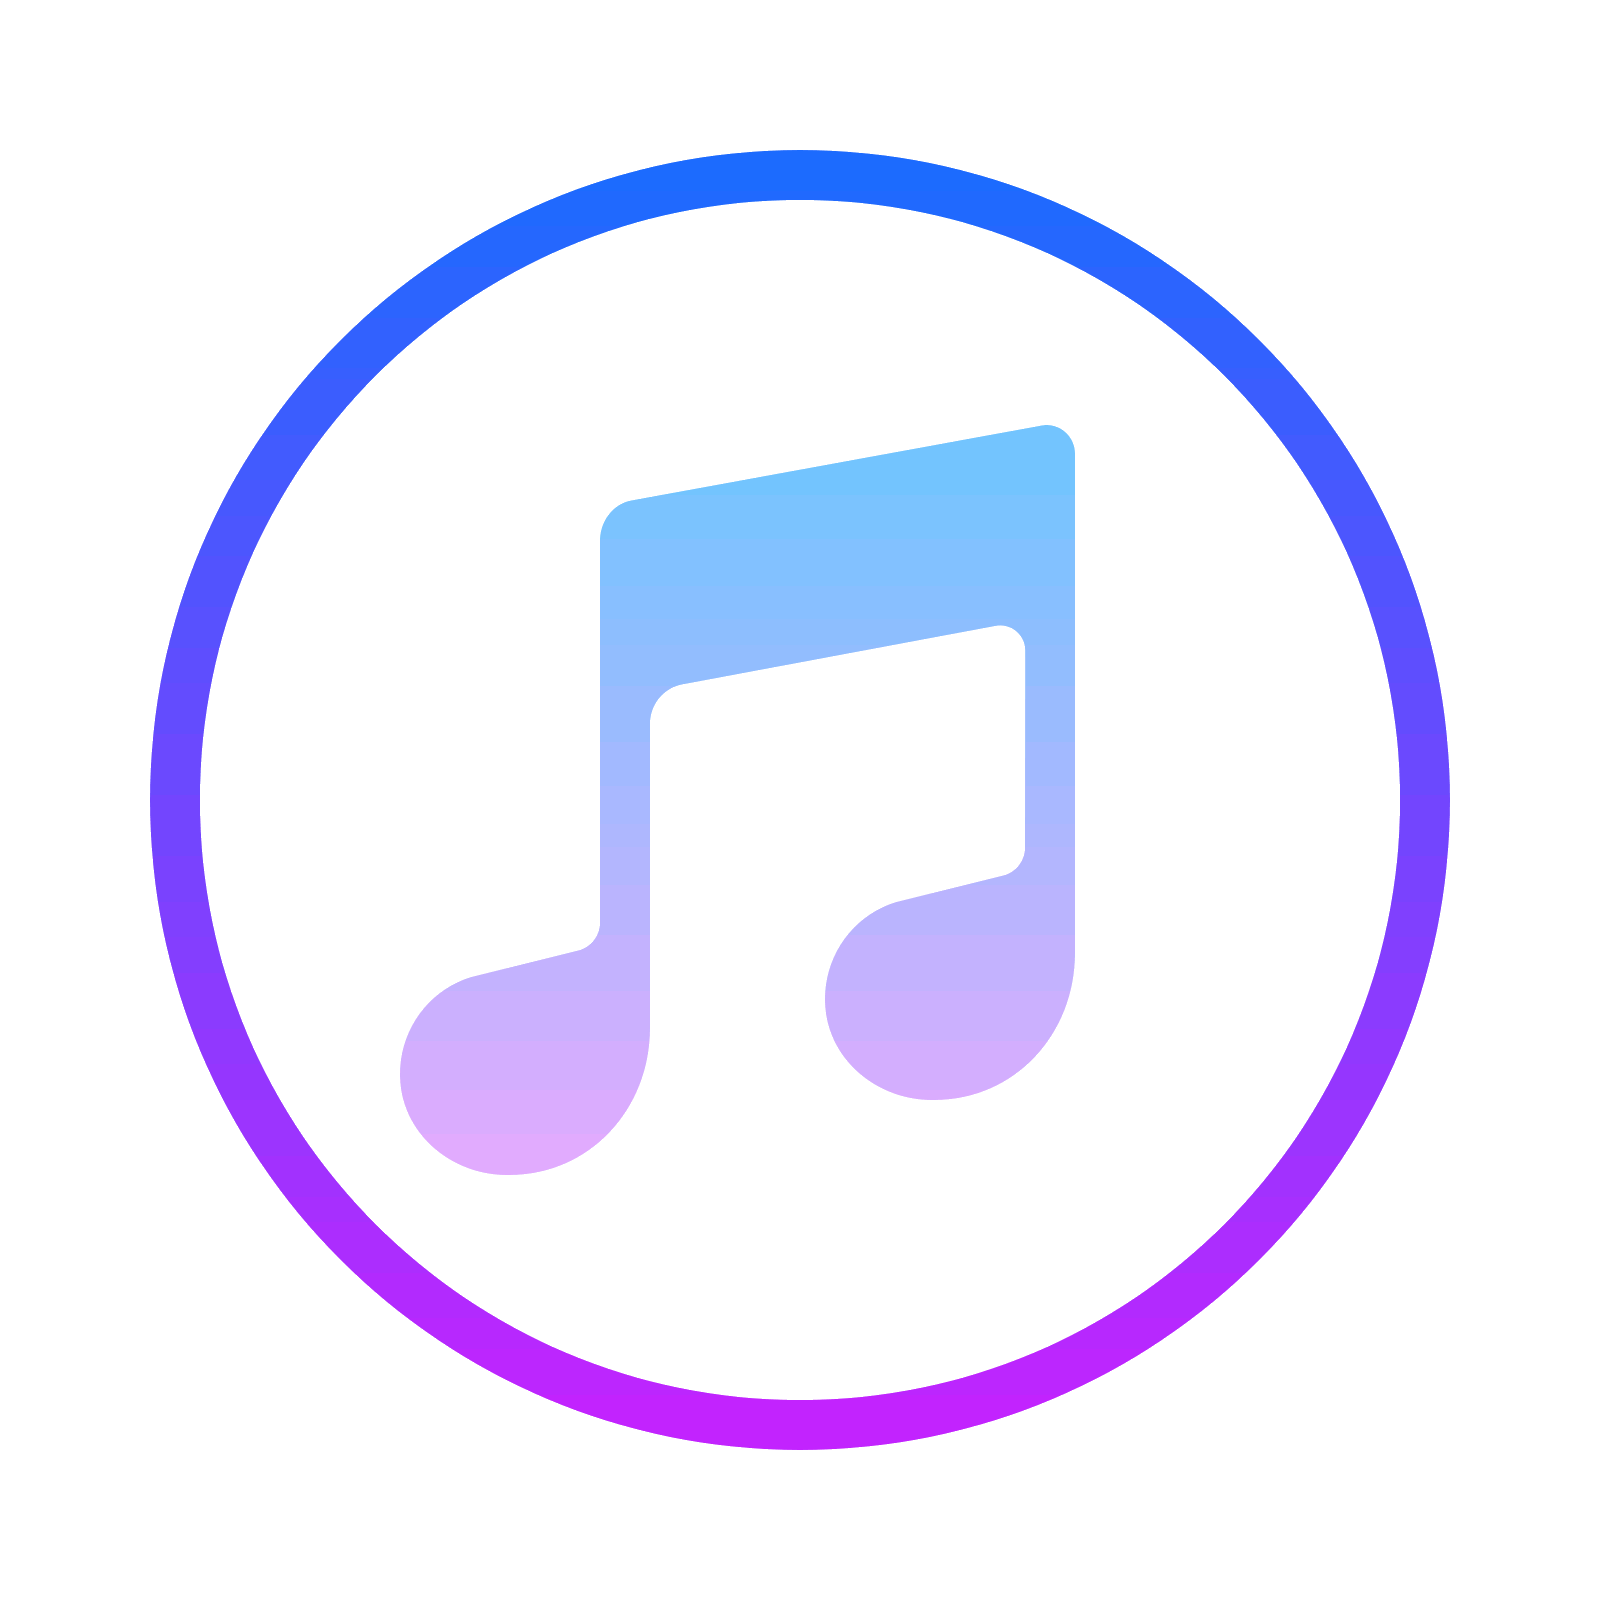 Itunes icon png, Itunes icon png Transparent FREE for ...